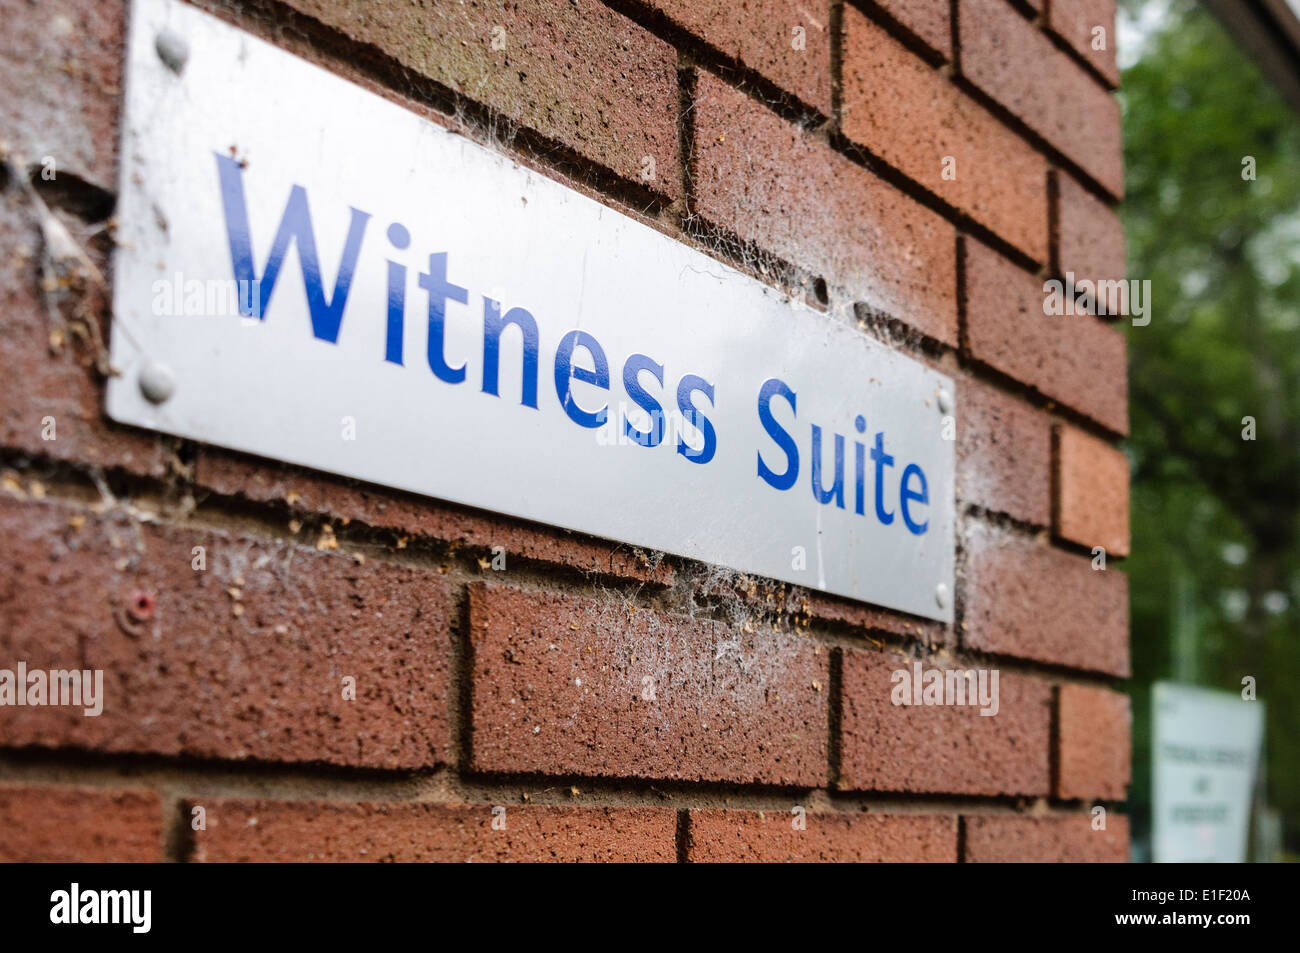 Sign at the entrance to a Witness Suite at a courthouse in the United Kingdom - Stock Image